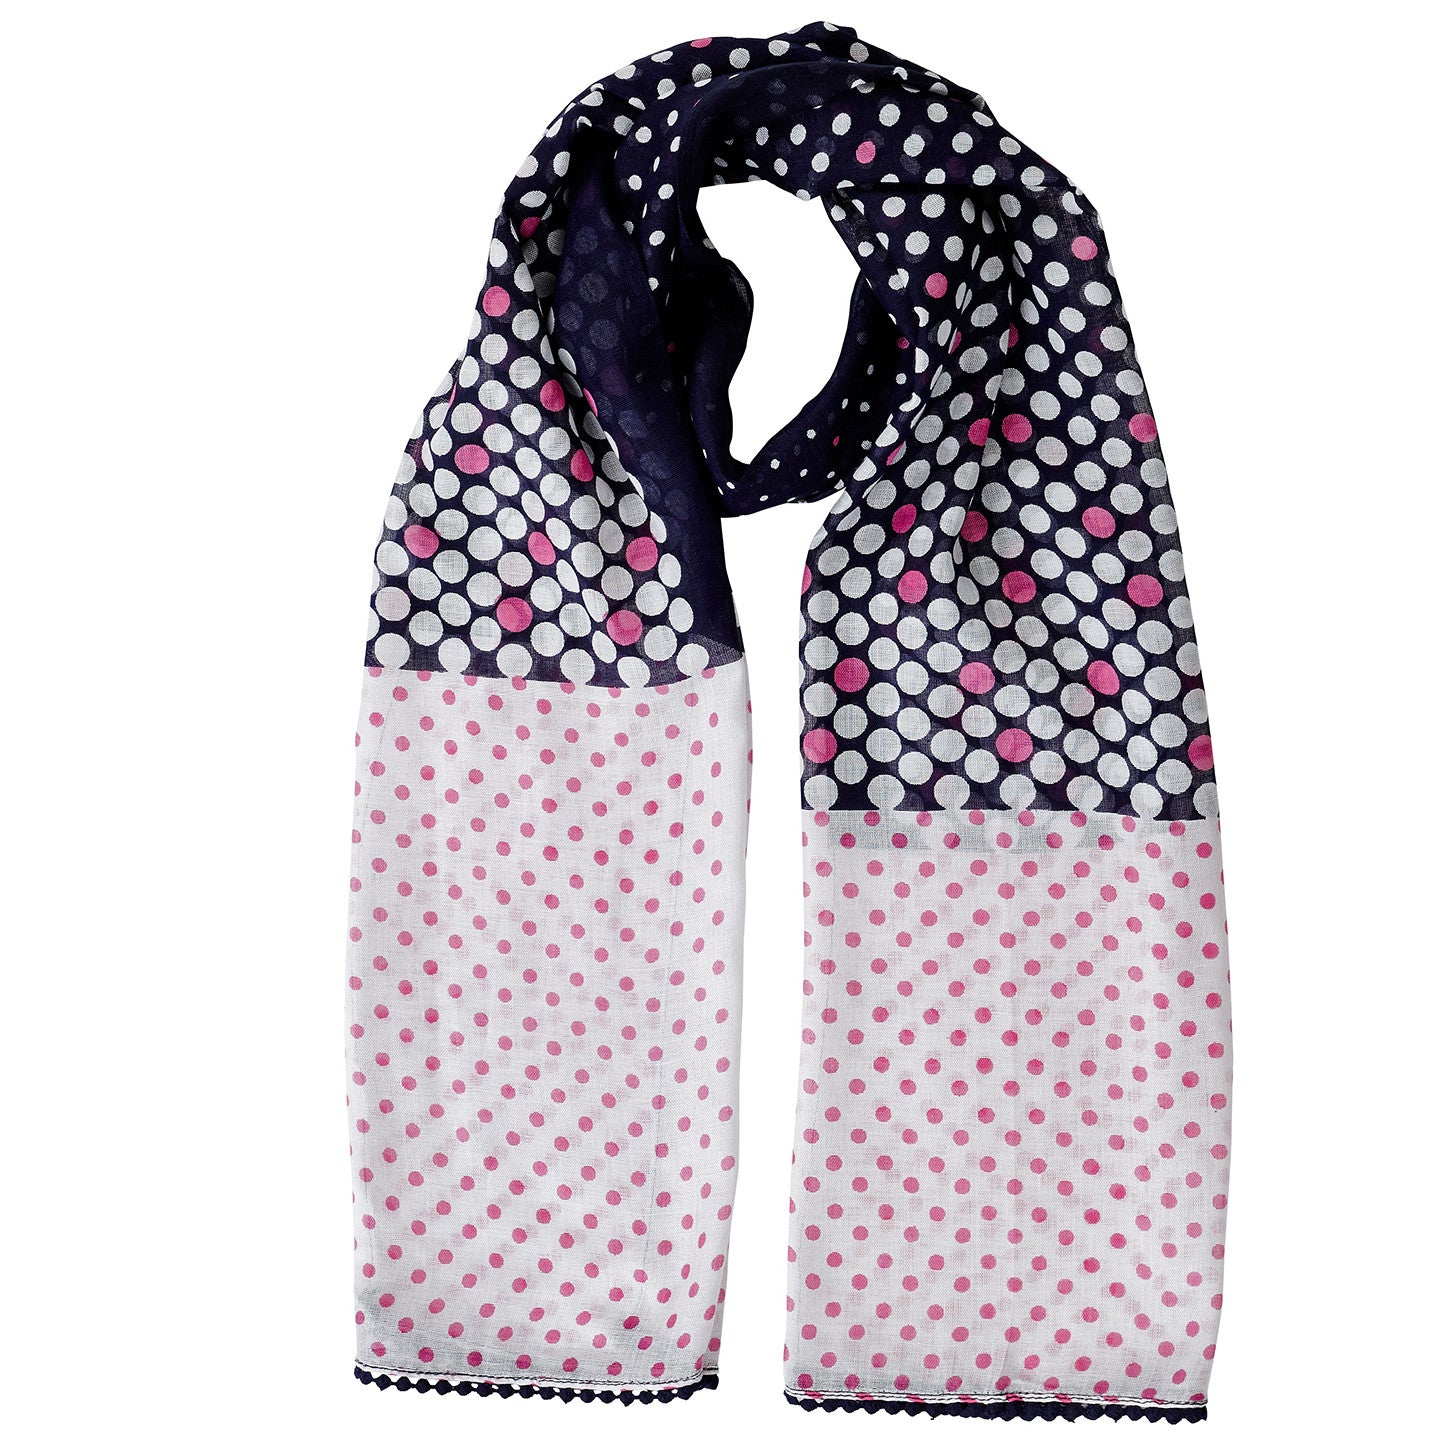 Neck Scarf Carlisle Polka Dot with Lace - Pine Hill Collections